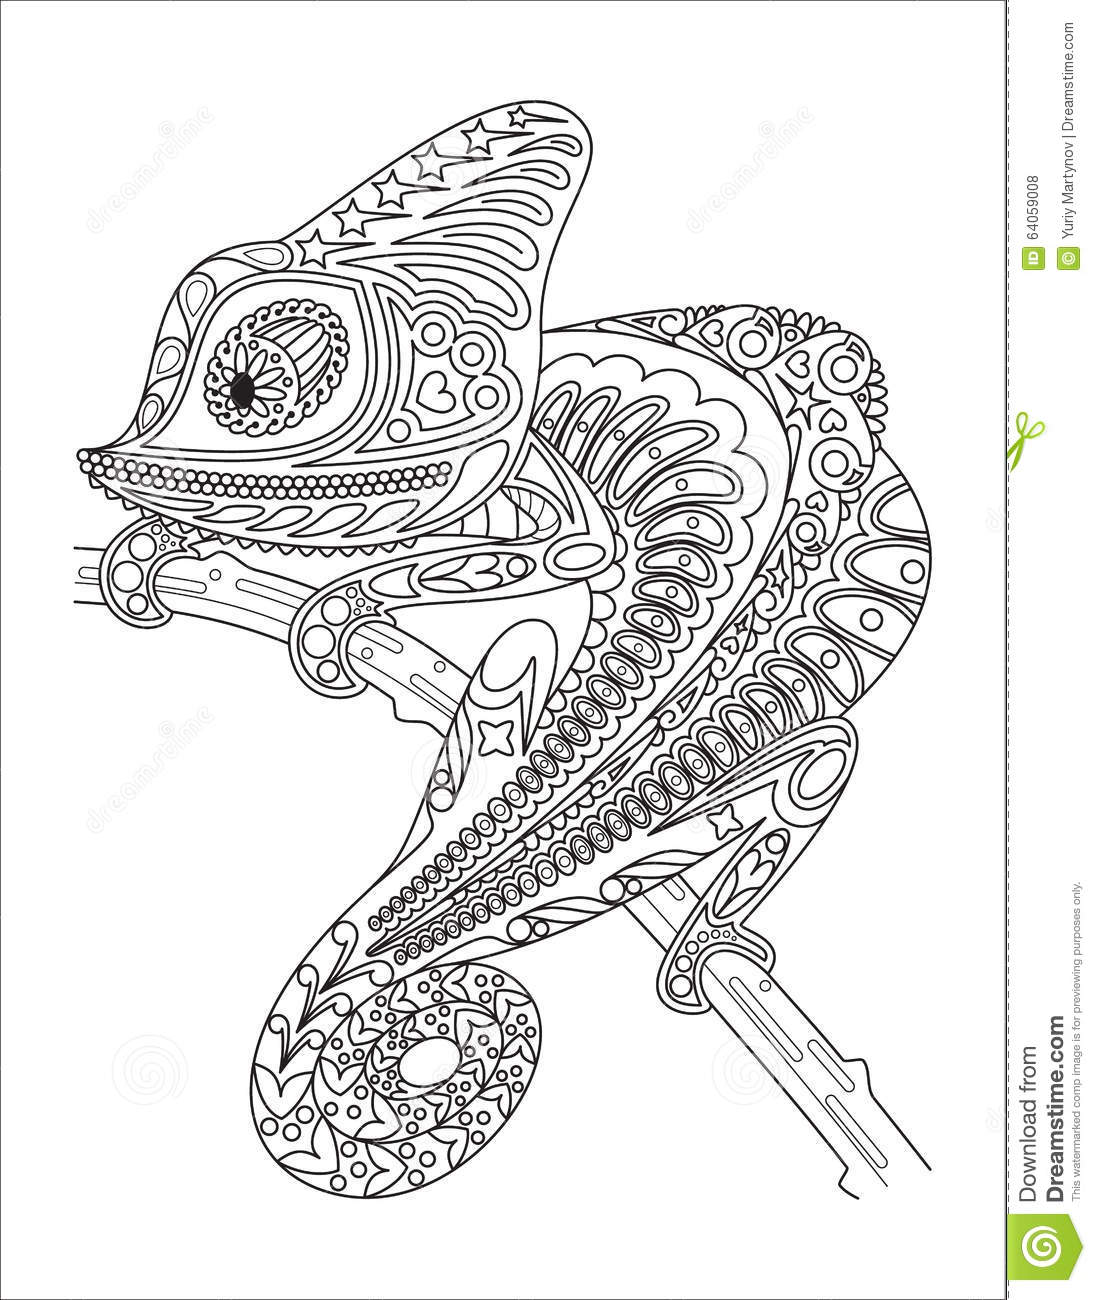 Monochrome Chameleon Coloring Page Black Over Stock Vector Image